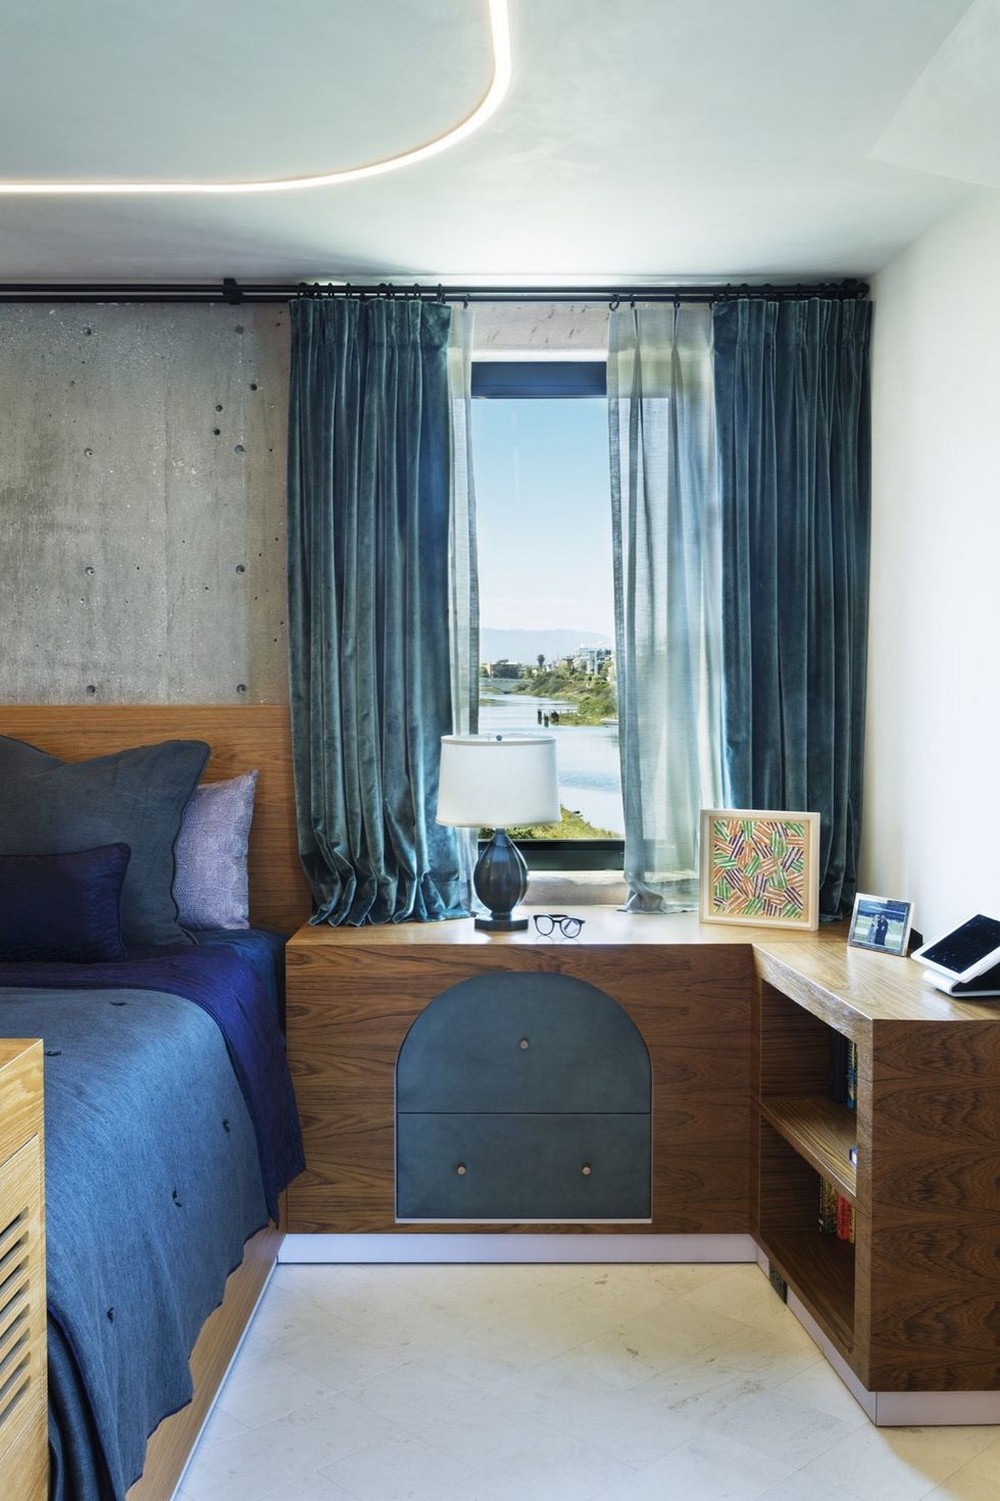 Modern Bedrooms 6 Interior Spaces to Draw Exquisite Design Ideas From 5